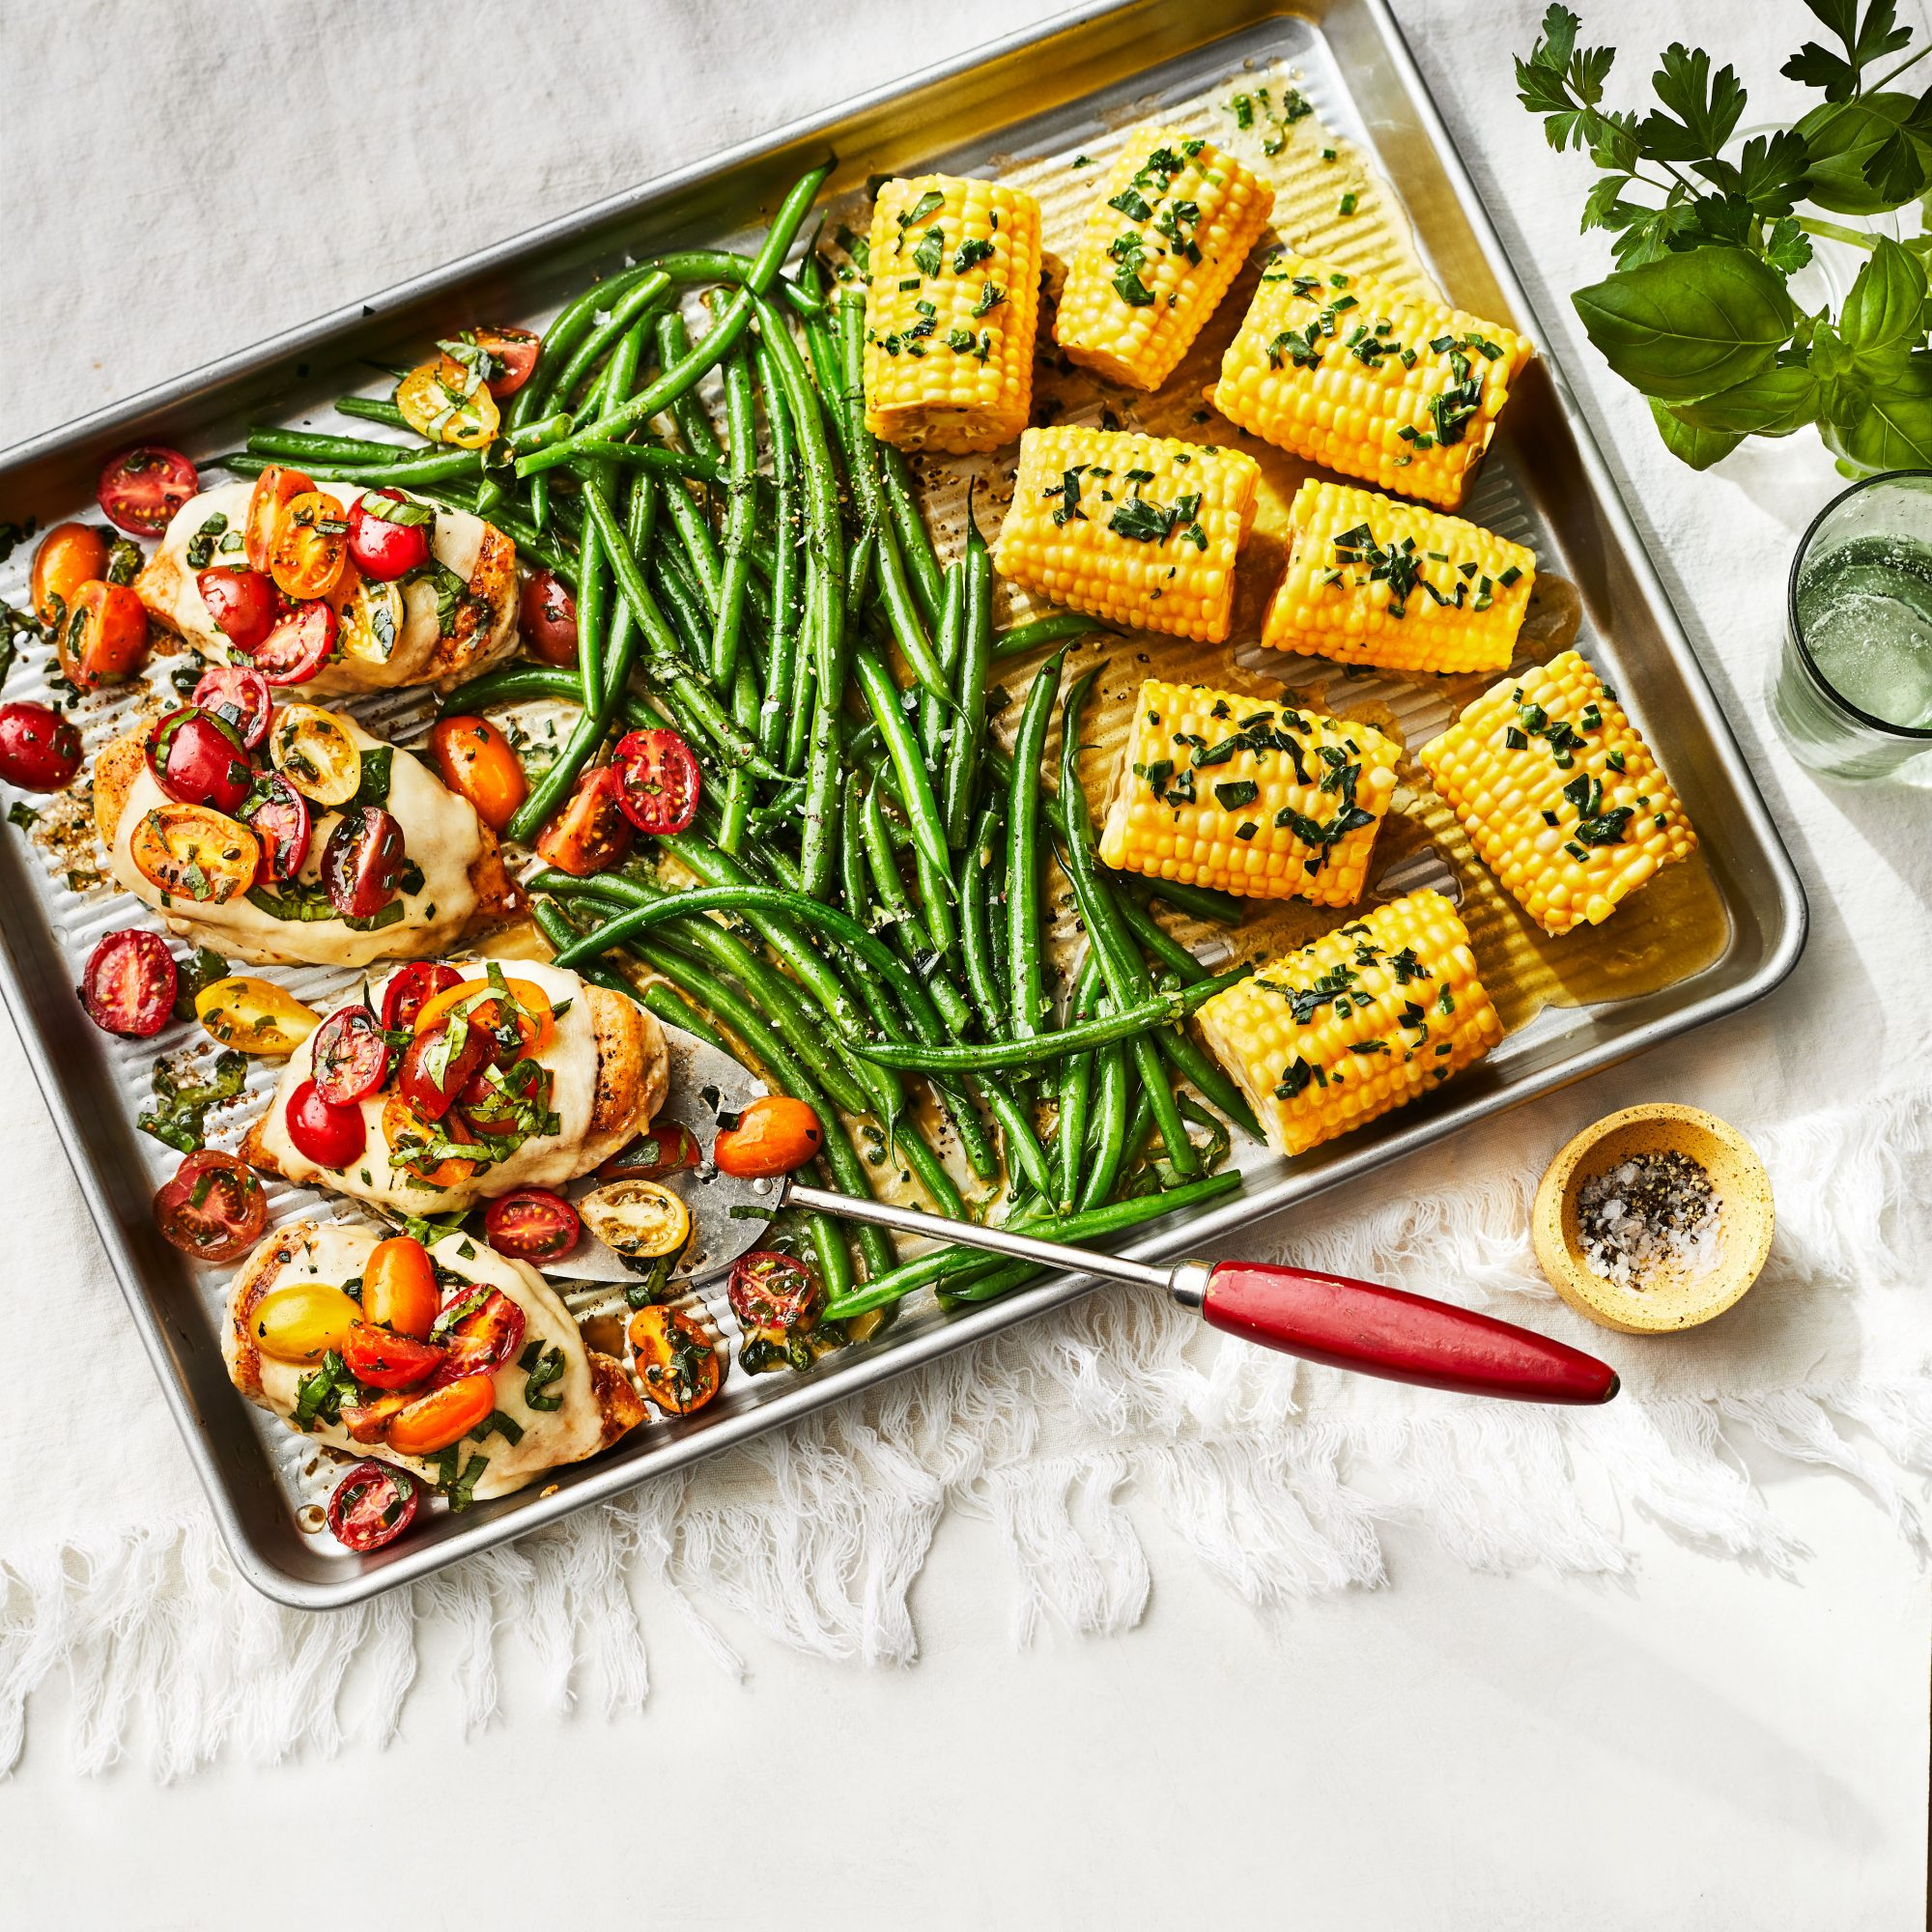 Baked Caprese Chicken With Green Beans and Corn